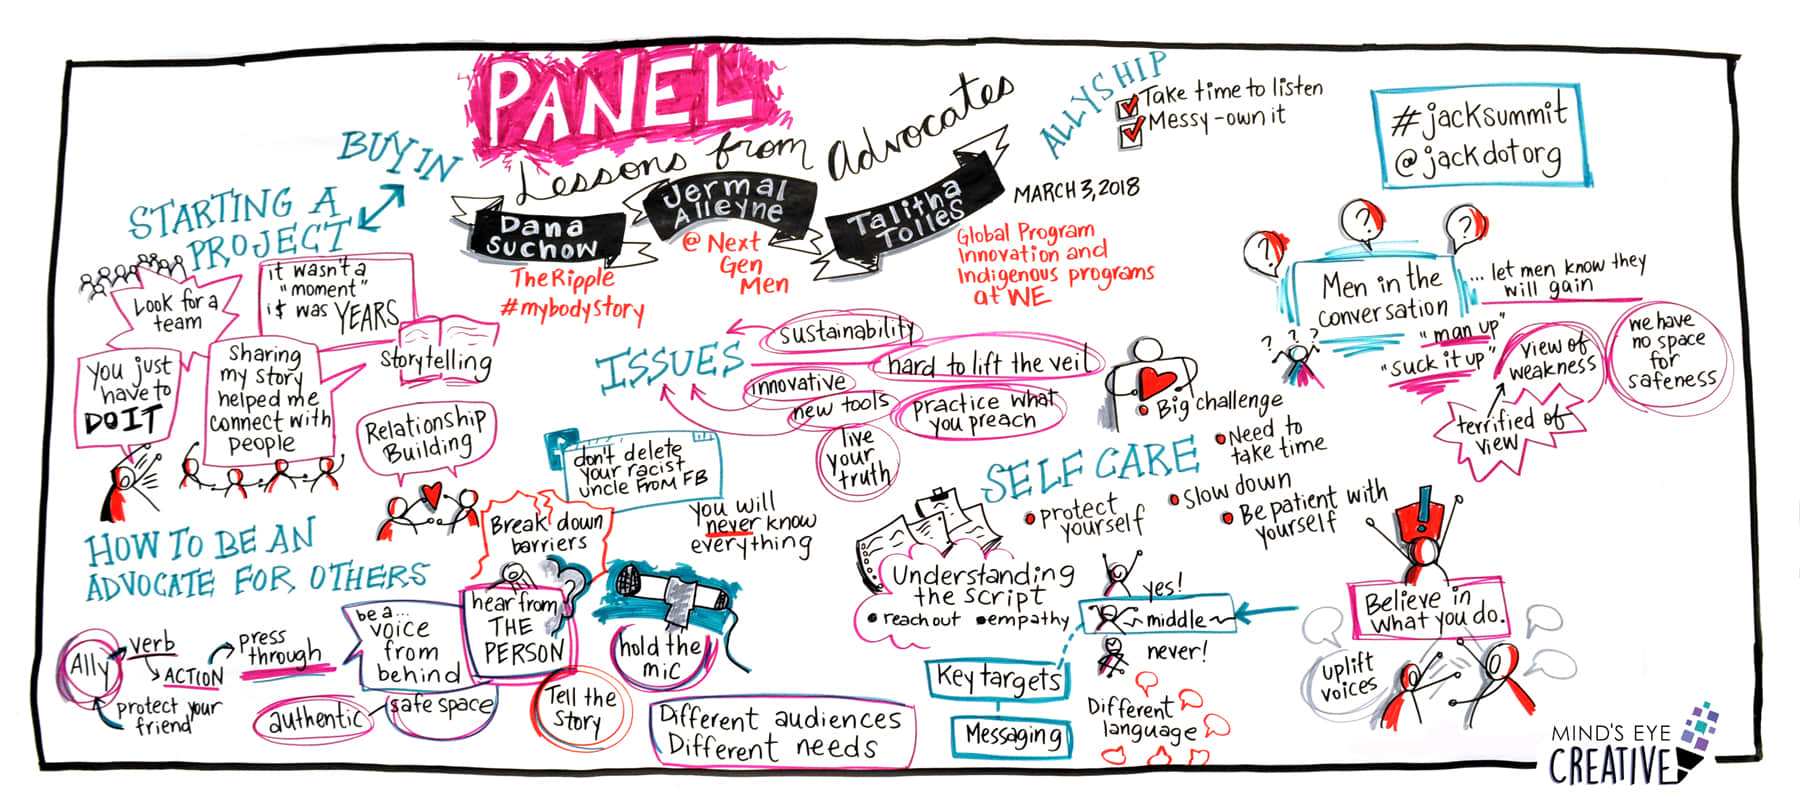 Graphic recording panel lesson with advocates